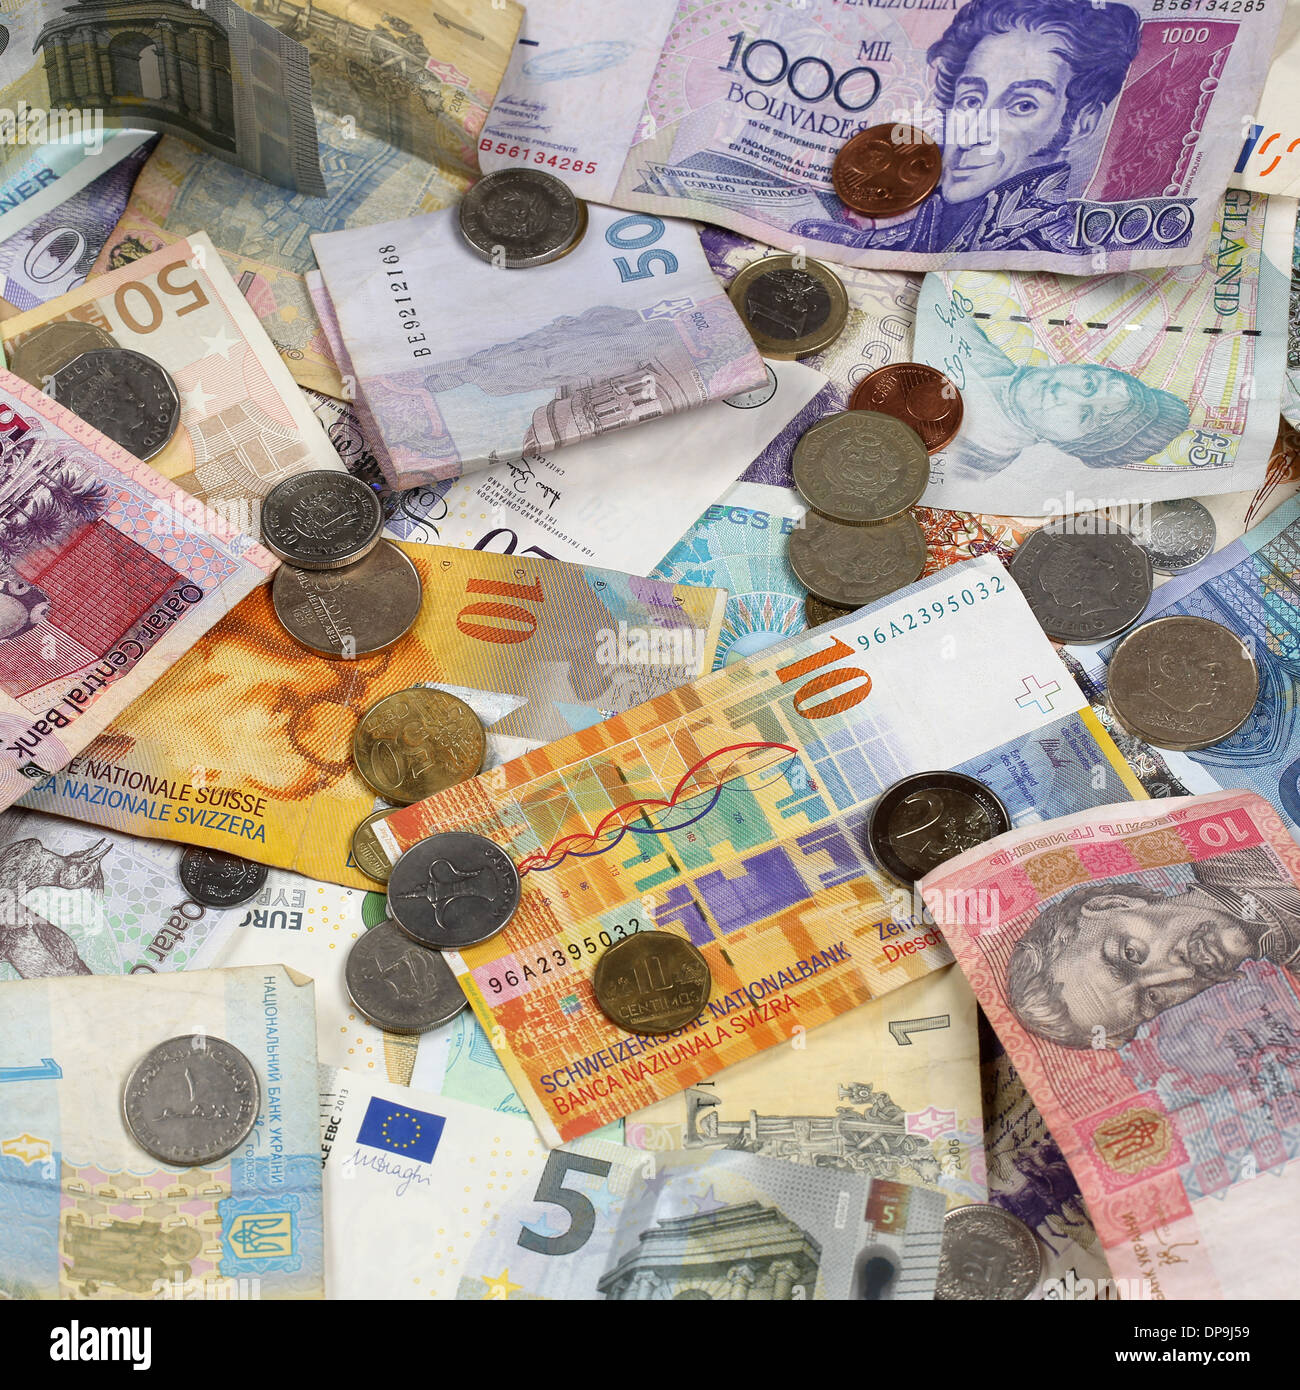 Banknotes And Coins Like Euro Dollar Swiss Franc Pound Rubel Donation